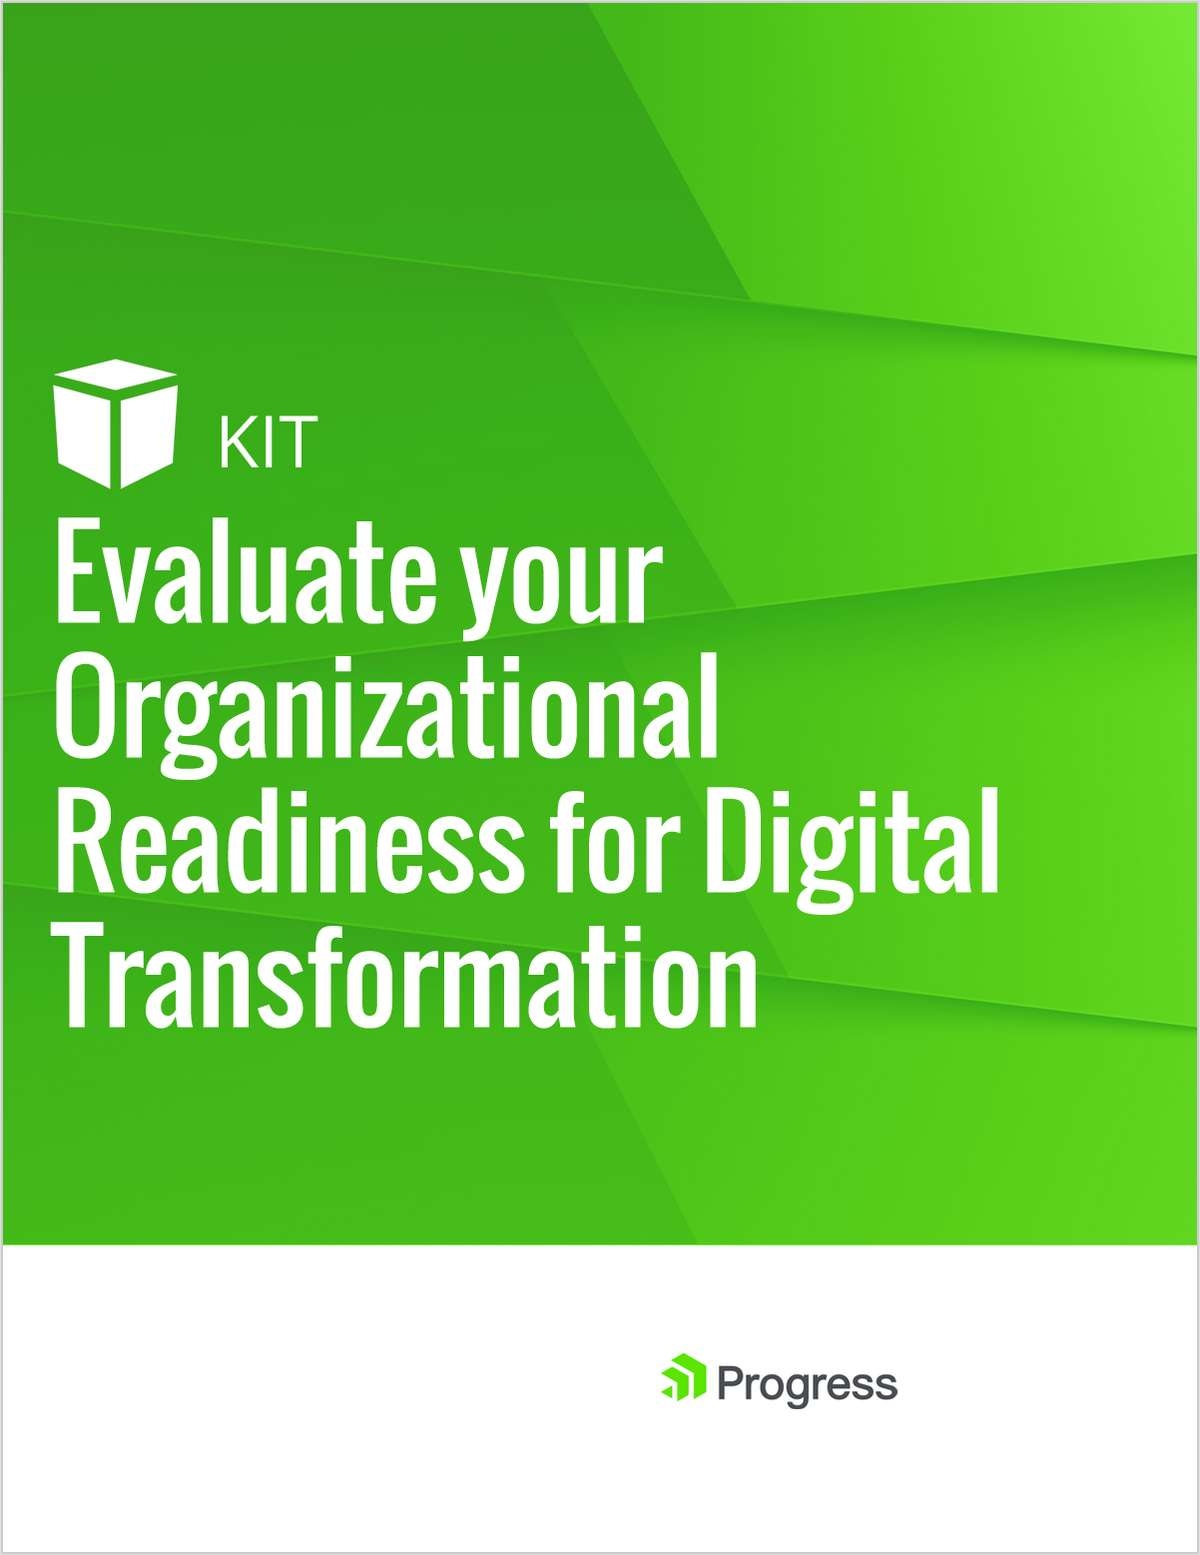 Evaluate your Organizational Readiness for Digital Transformation